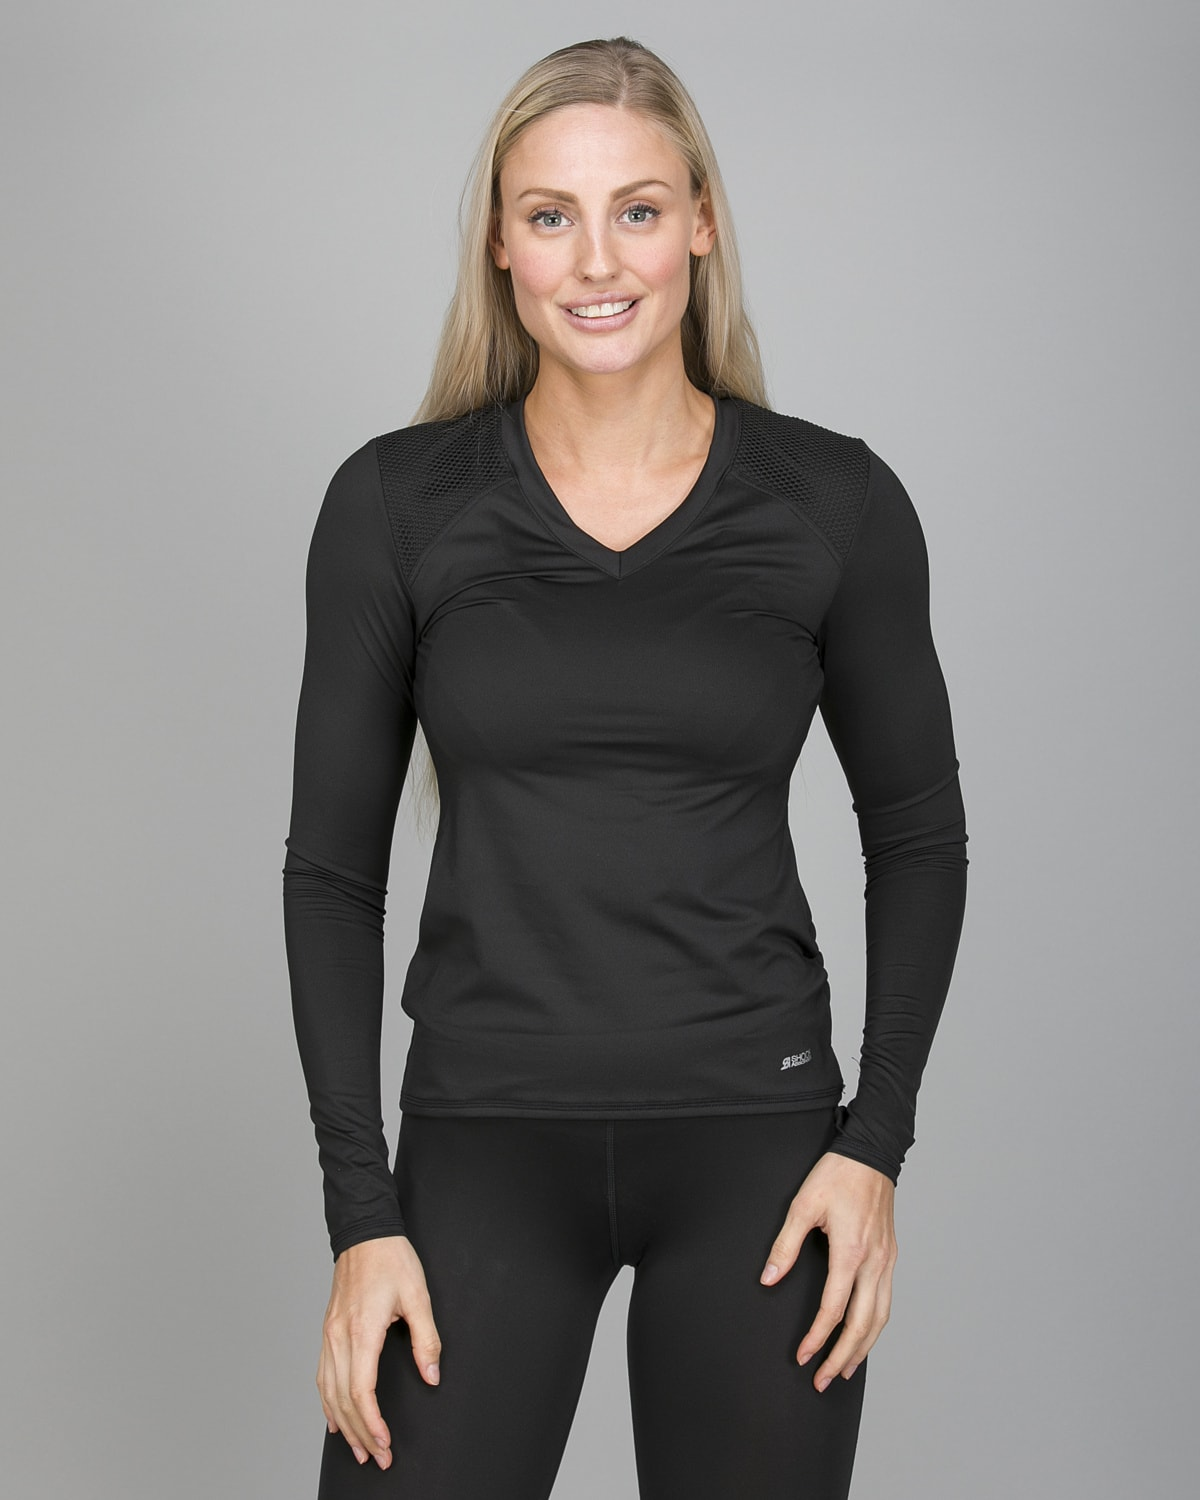 Shock Absorber Active Branded Long Sleeve S06S8 b